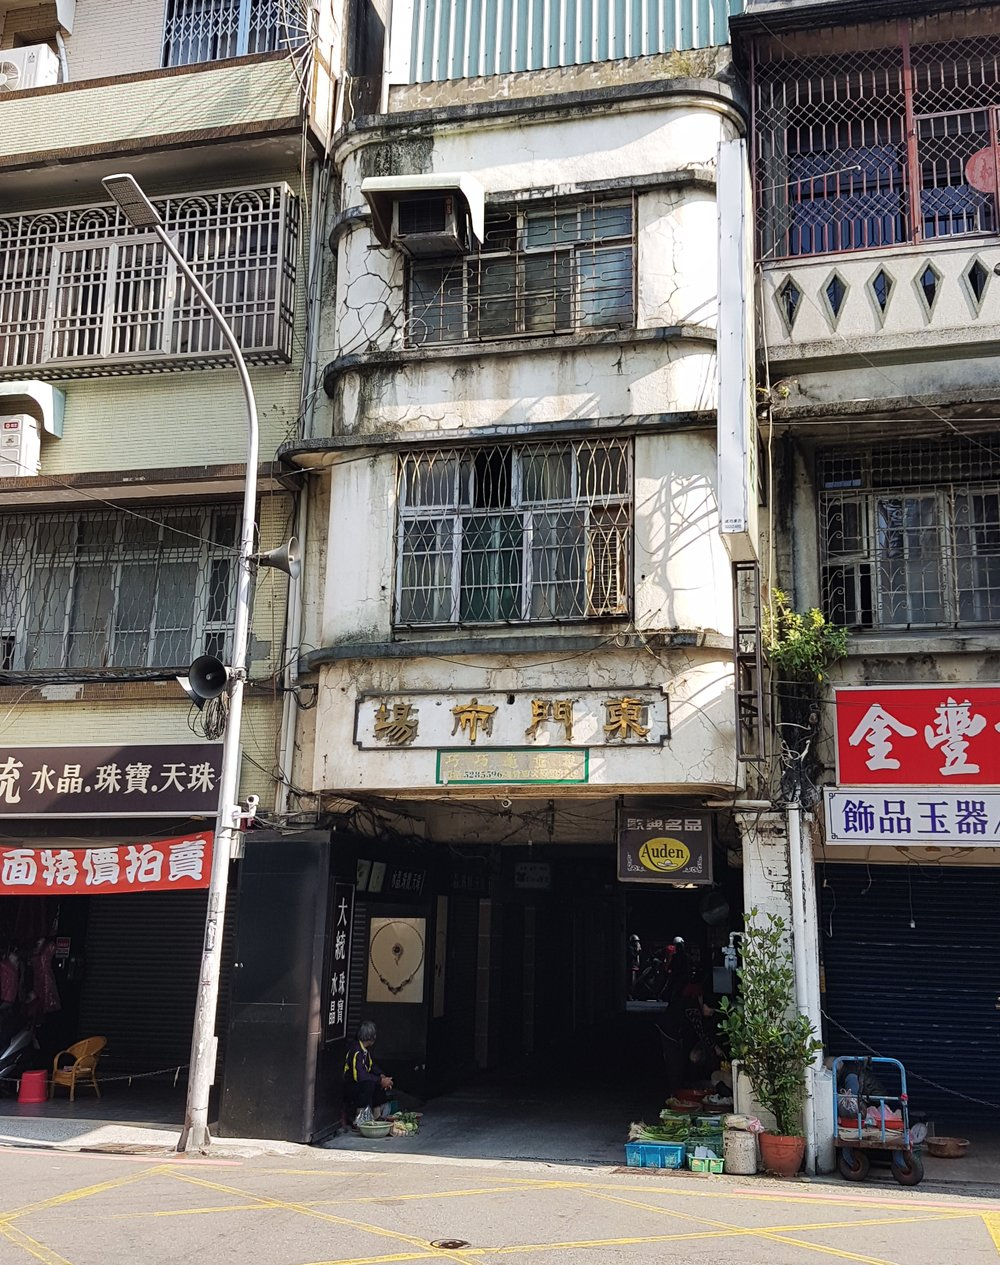 Dongmen Market, Hsinchu. Entrance and inner courtyard